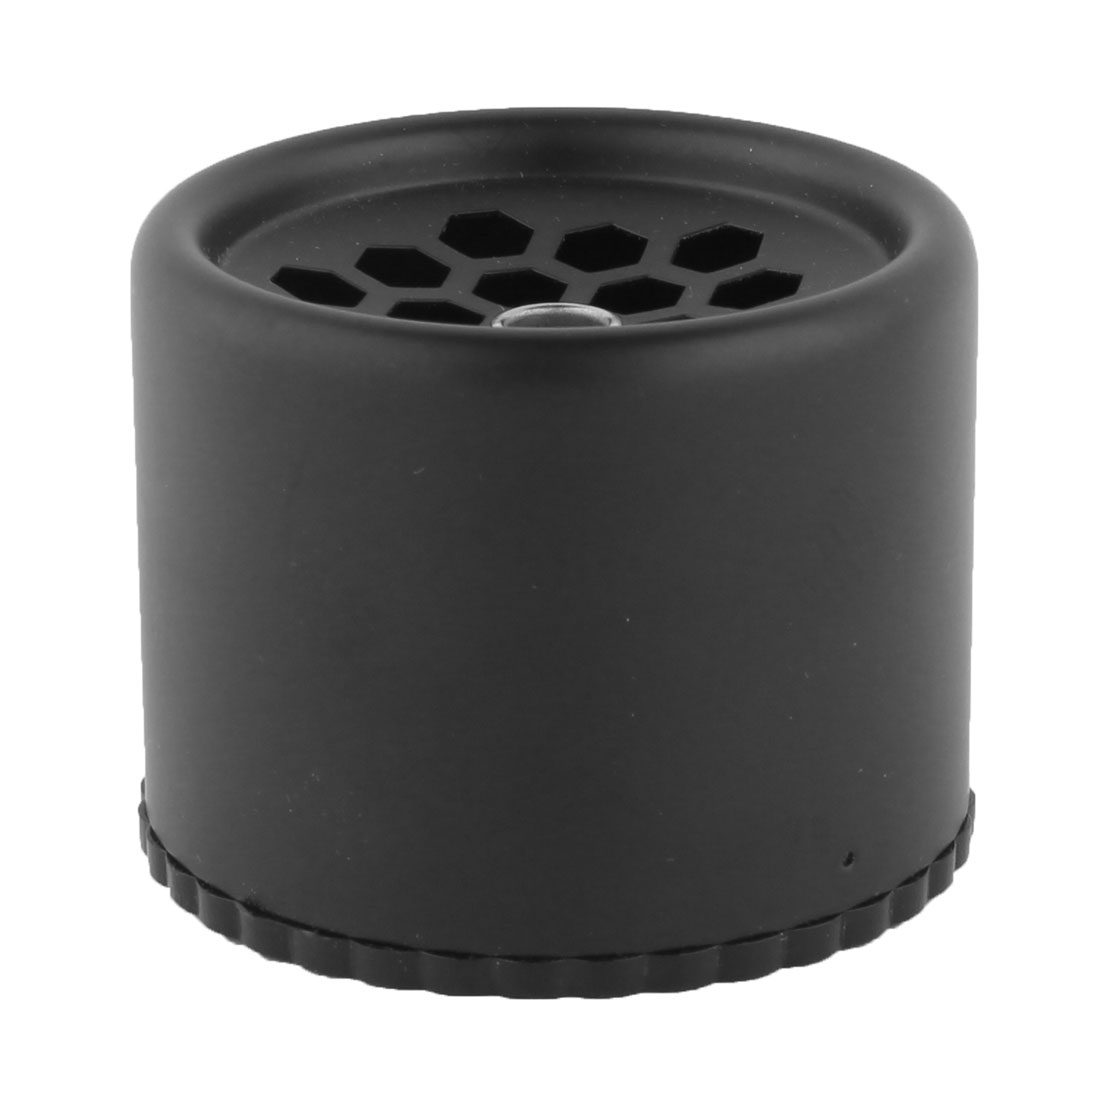 Portable In Car Vehicle Cigarette Smoke Ashtray Ash Holder Bucket Cup